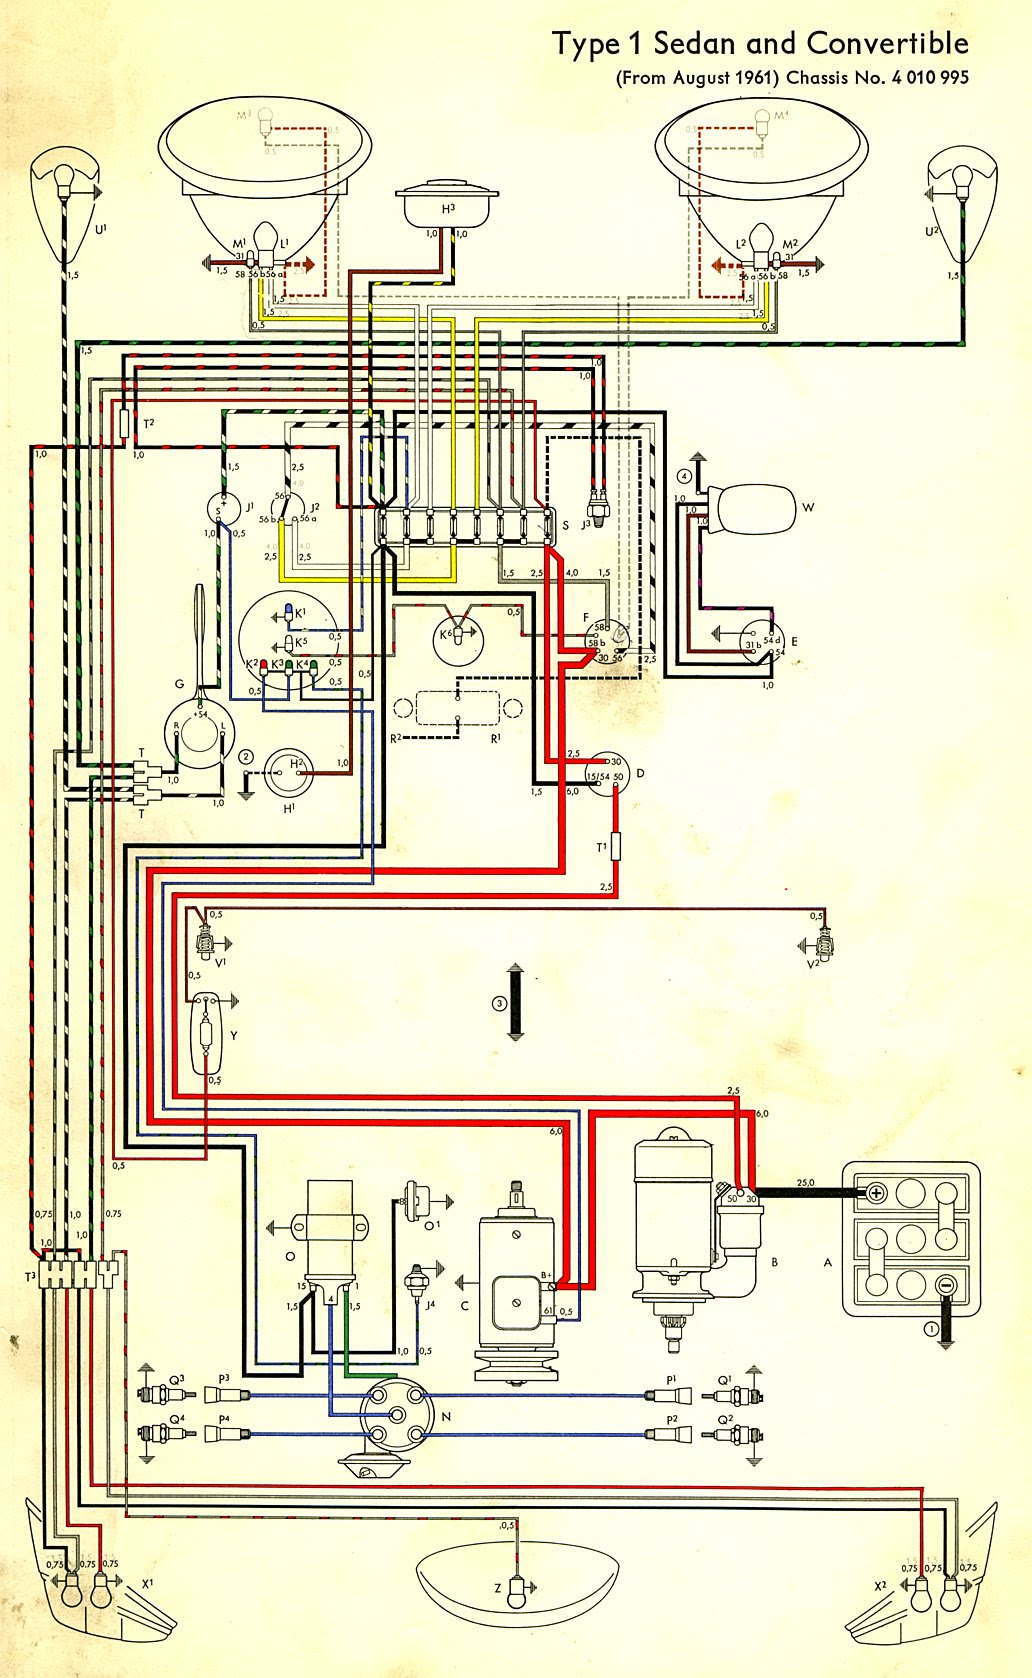 Dome Light Wiring Diagram Vw Bug Wiring Diagrams Post Studio A Studio A Michelegori It